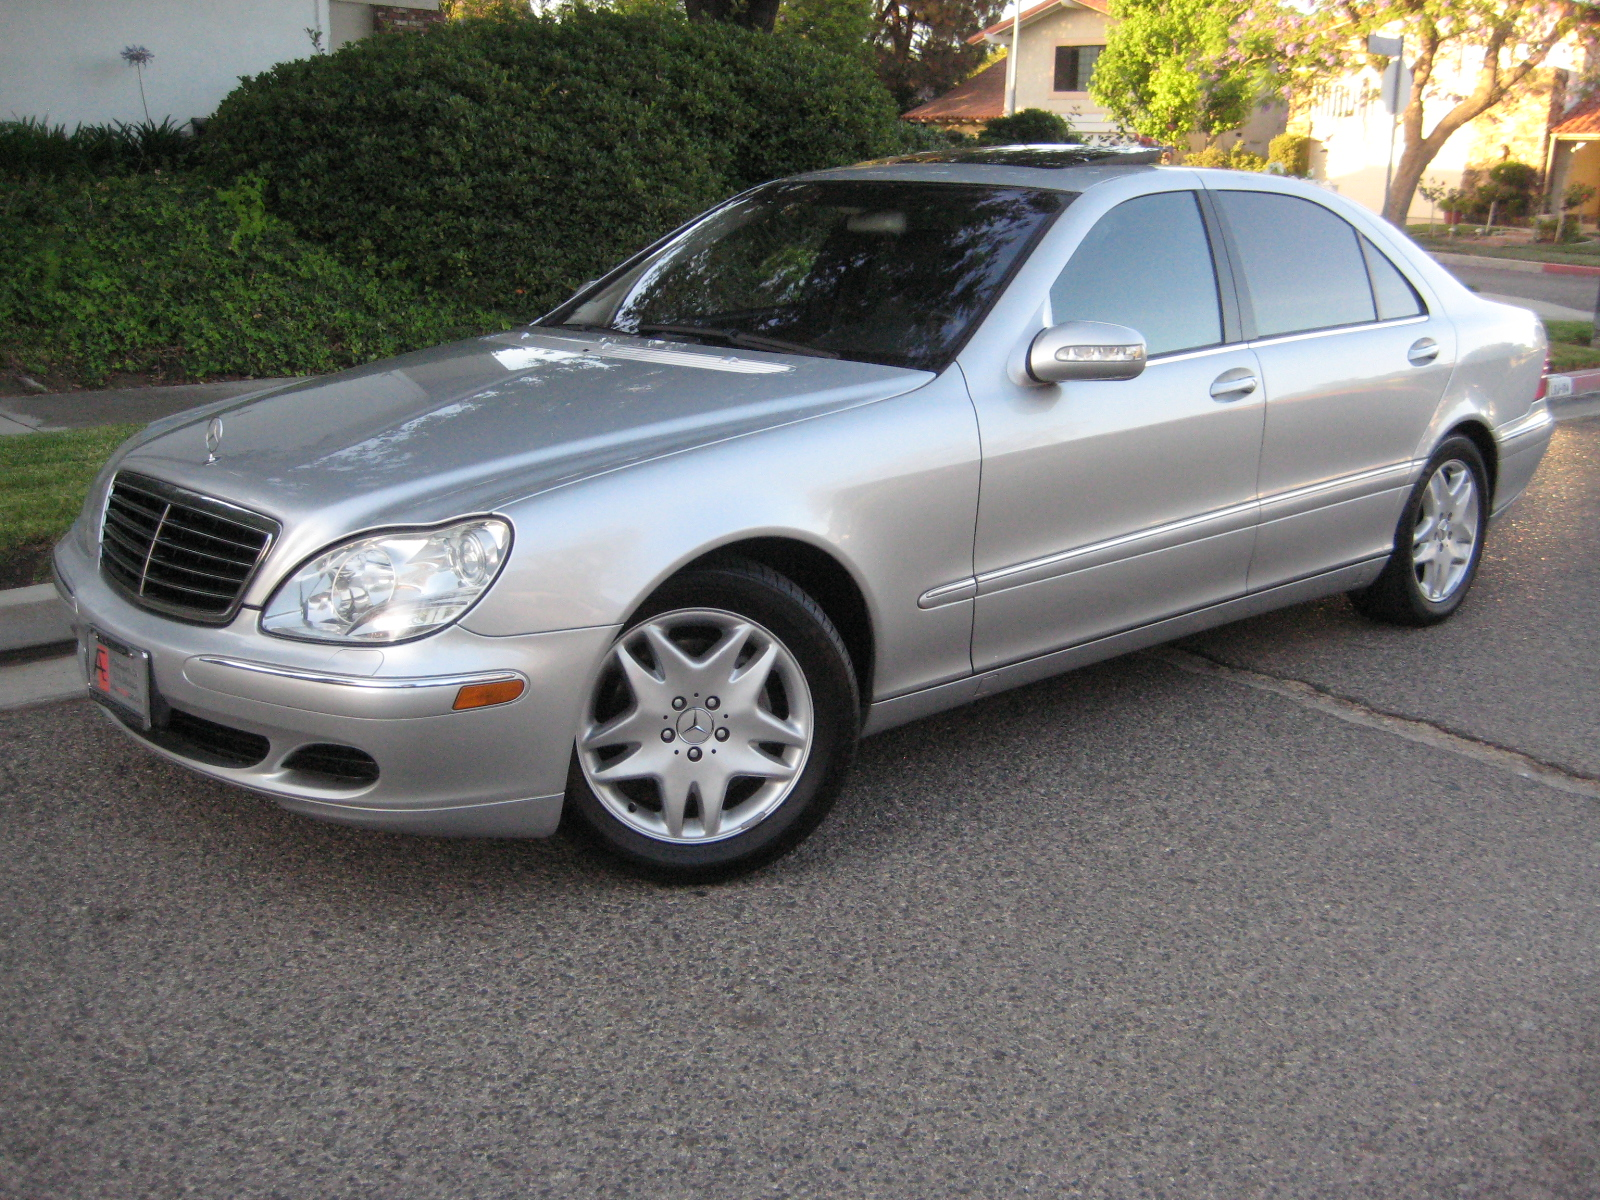 2003 mercedes benz s class pictures cargurus for 2001 mercedes benz s500 specs